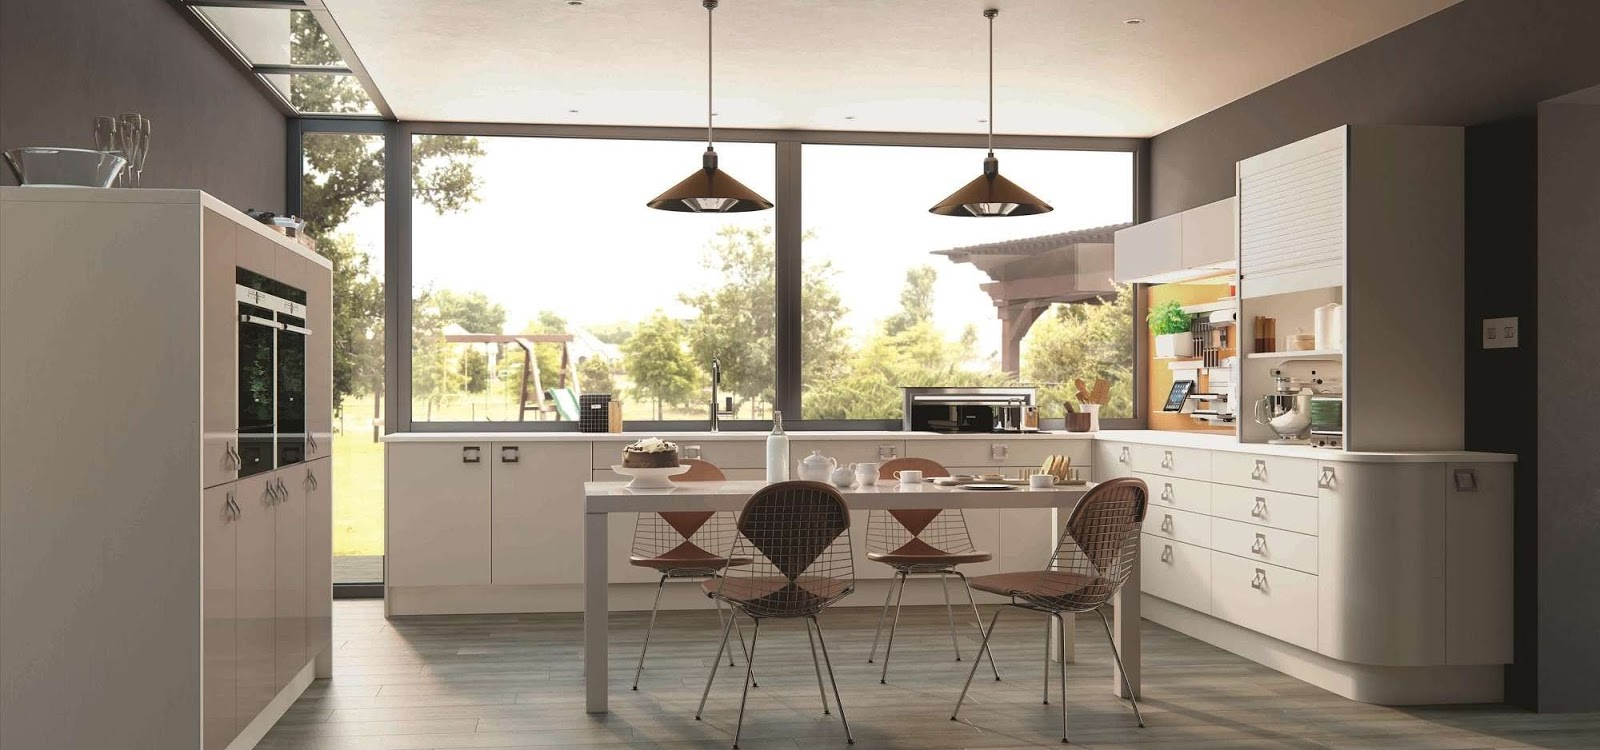 Designer Kitchens In Maidenhead, Berkshire | Orphic Kitchens